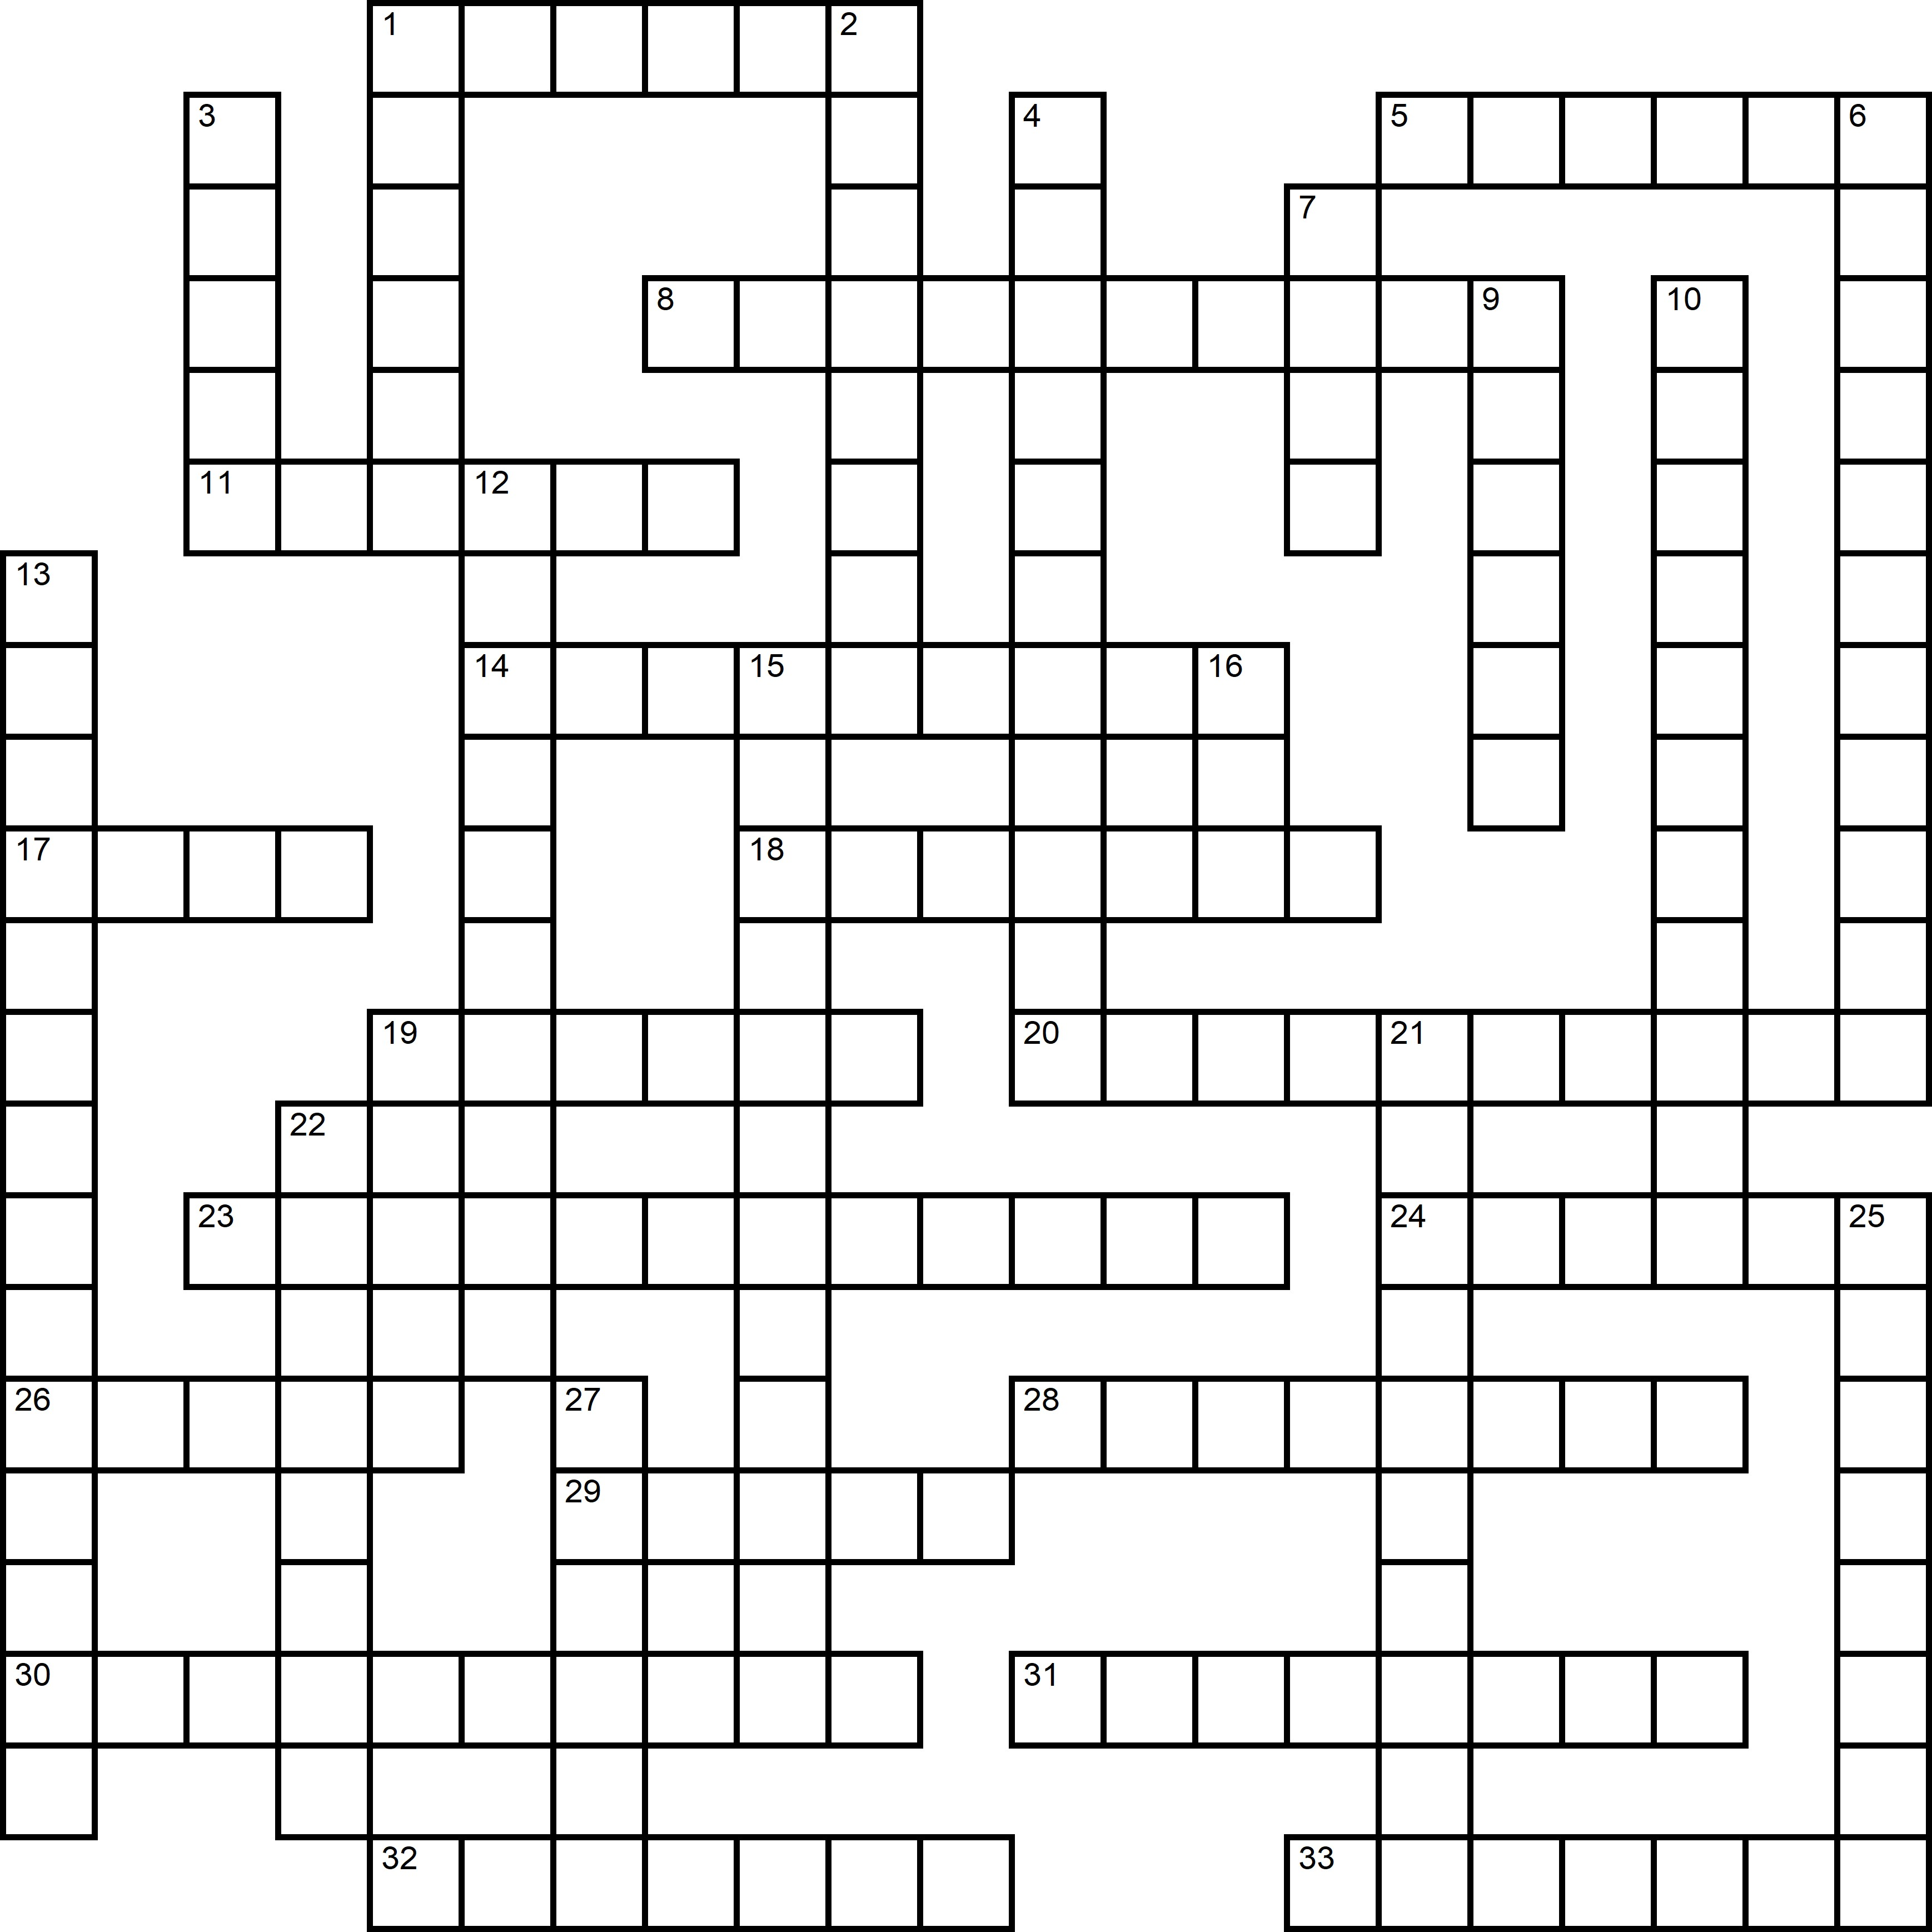 Easy Crossword About World Population Day